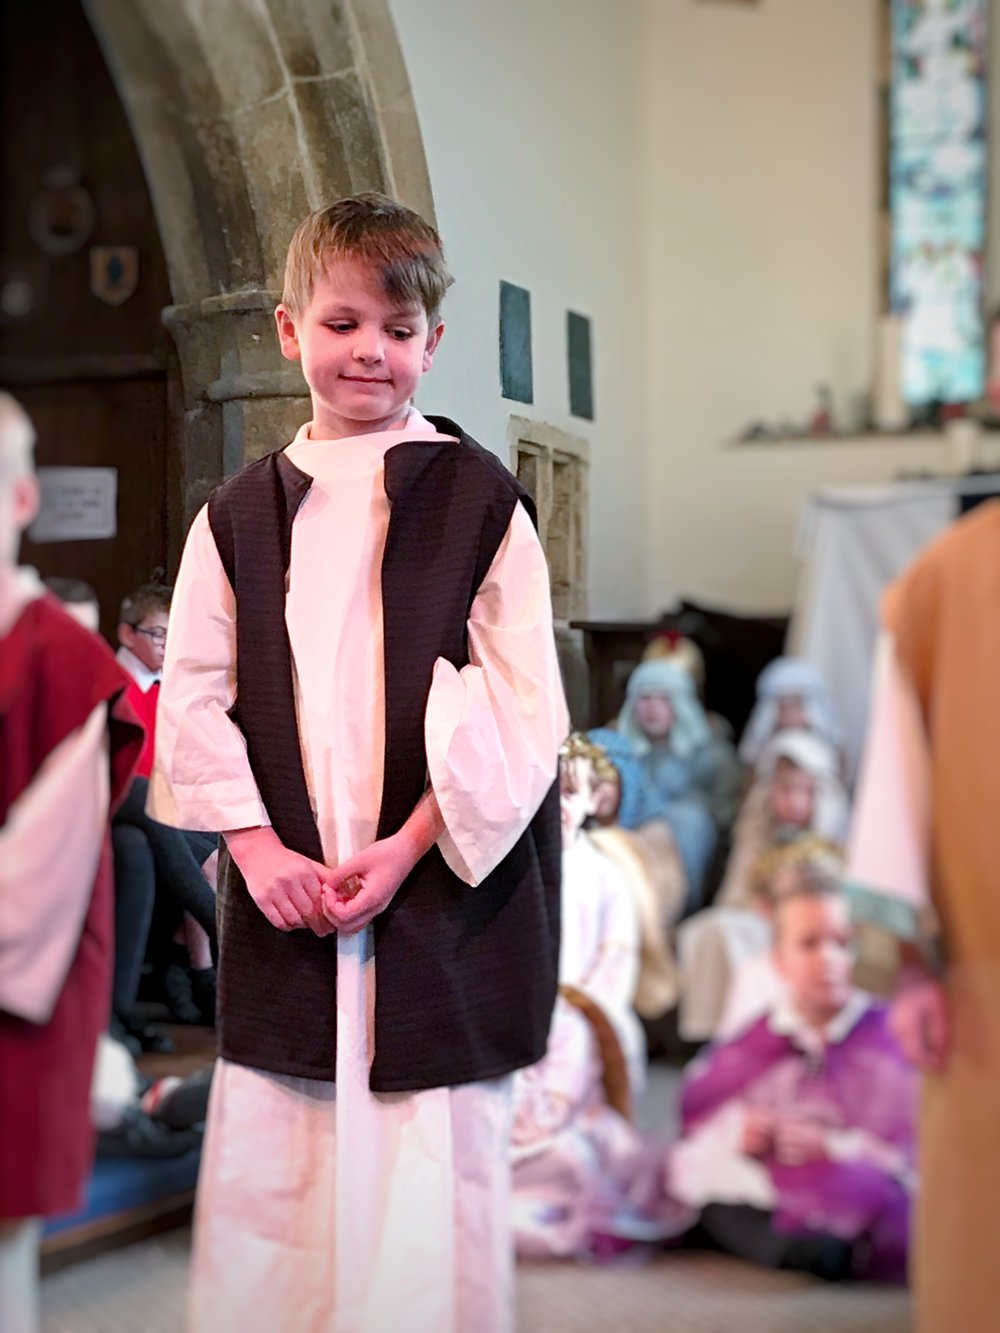 Reuben was an innkeeper at this year's school Nativity